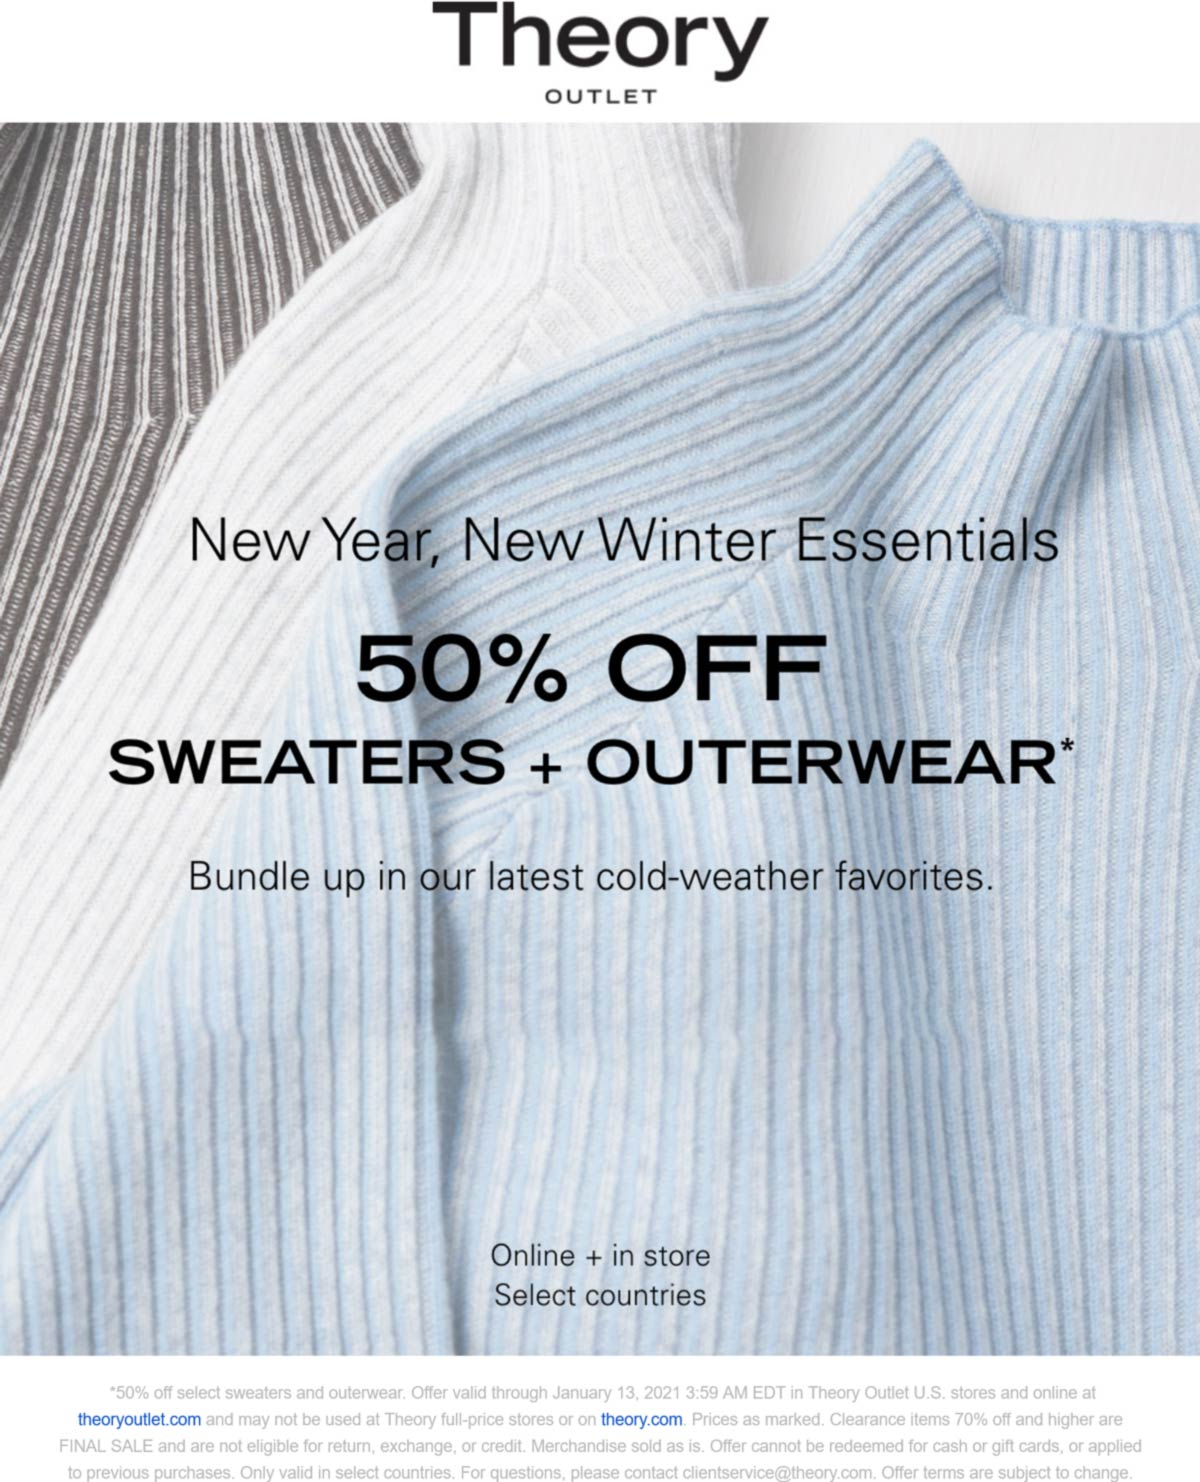 Theory Outlet stores Coupon  50% off sweaters & outerwear today at Theory Outlet, ditto online #theoryoutlet